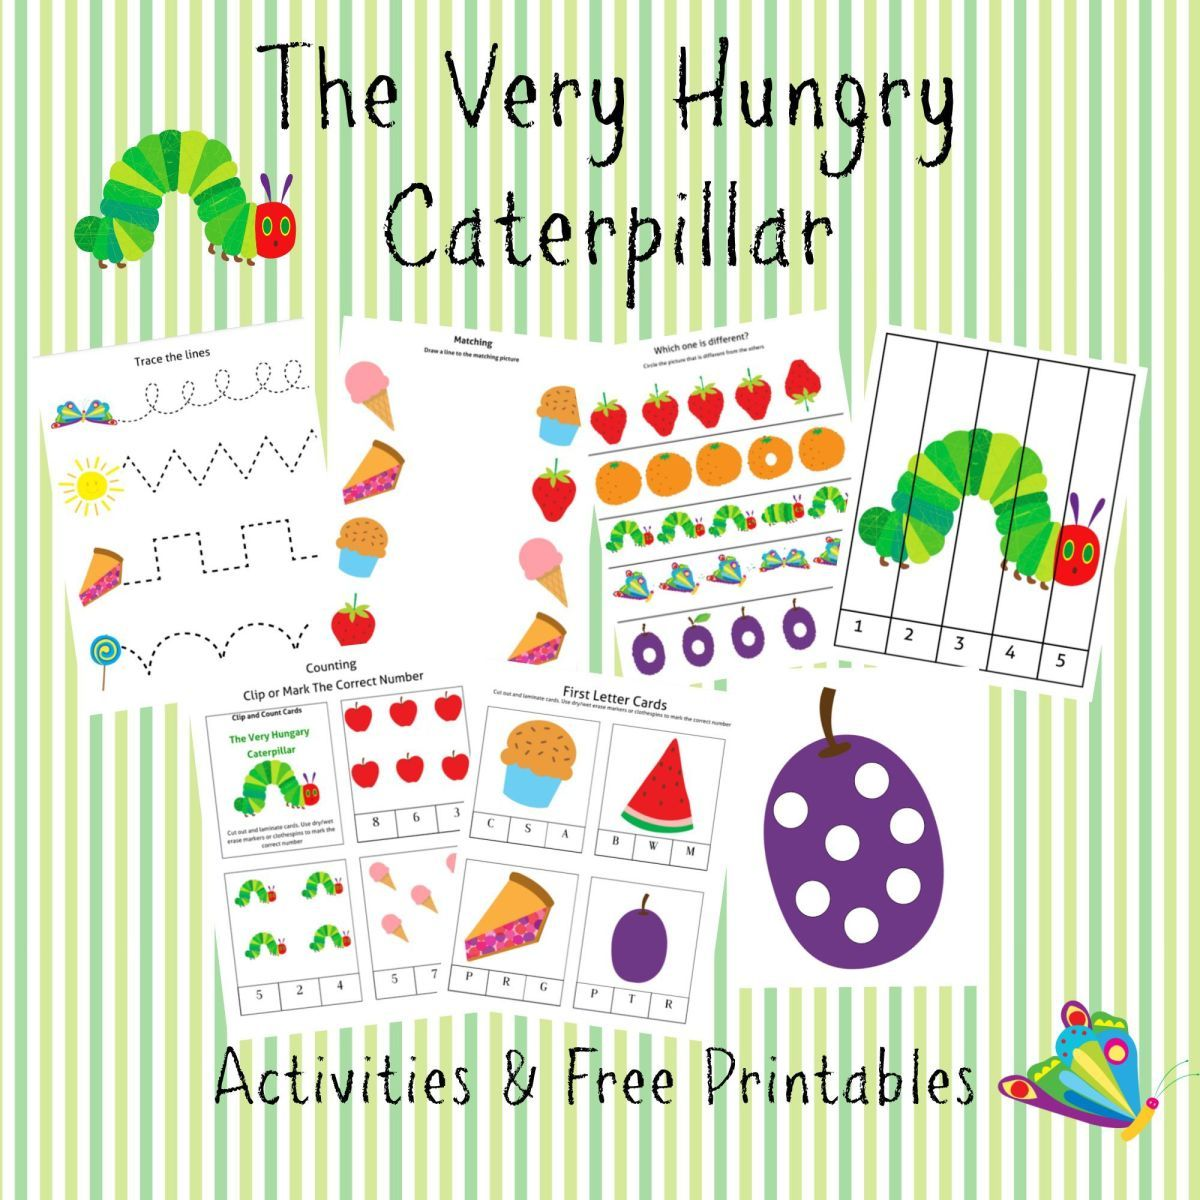 Free The Very Hungry Caterpillar 96 Page Printable Fre Very Hungry Caterpillar Printables Hungry Caterpillar Activities The Very Hungry Caterpillar Activities [ 1200 x 1200 Pixel ]